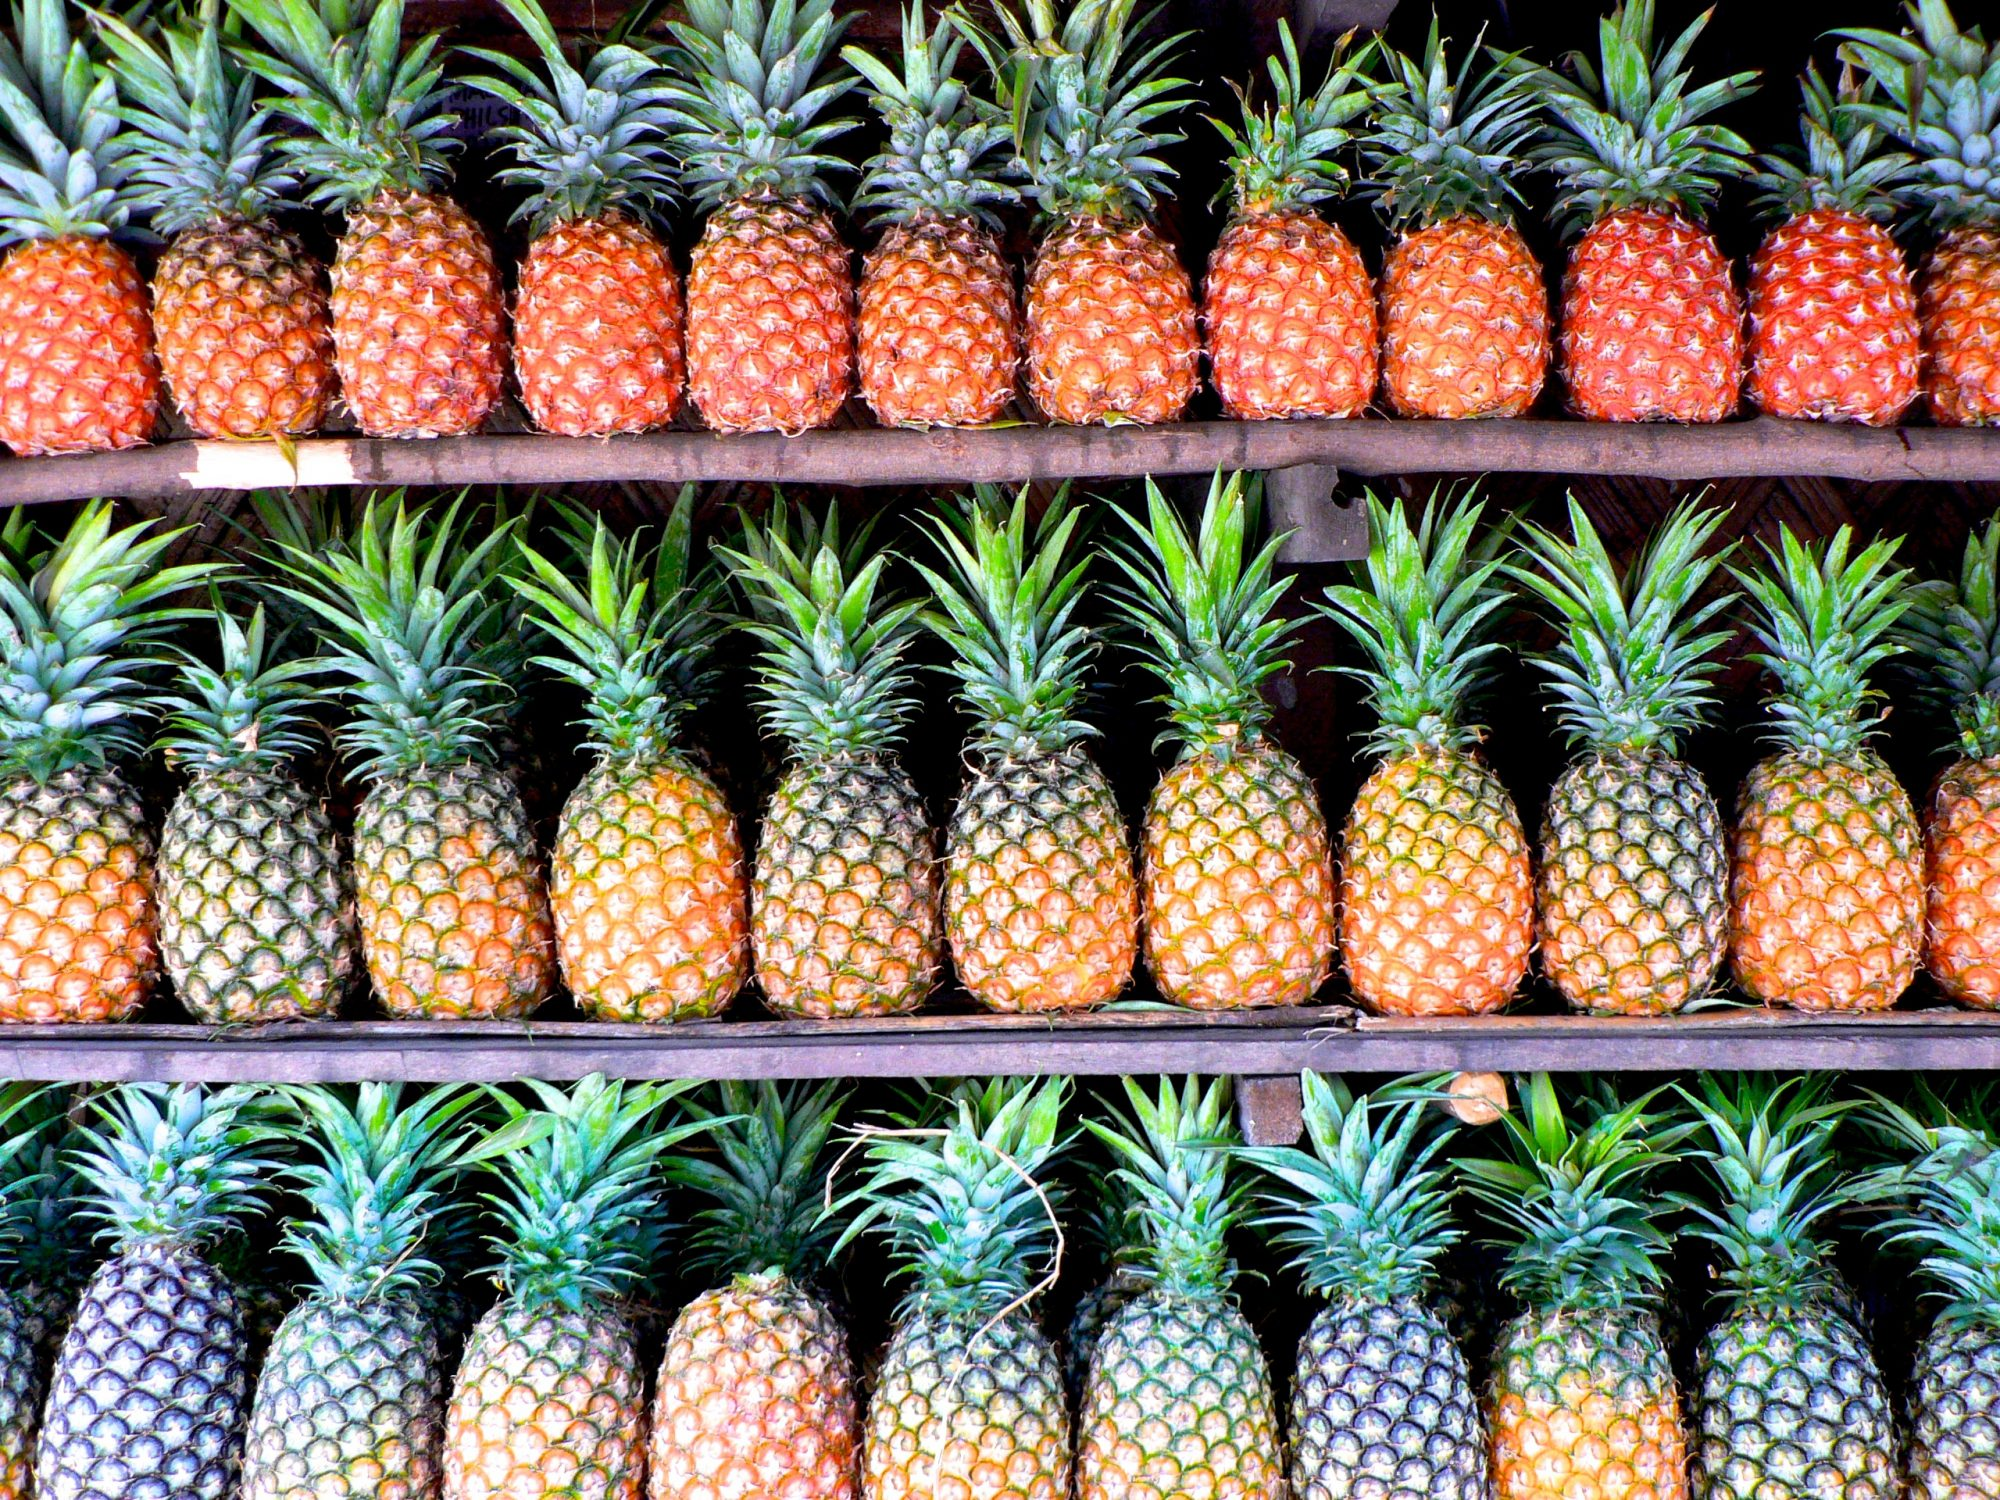 3 Healthy Reasons to Eat More Pineapple